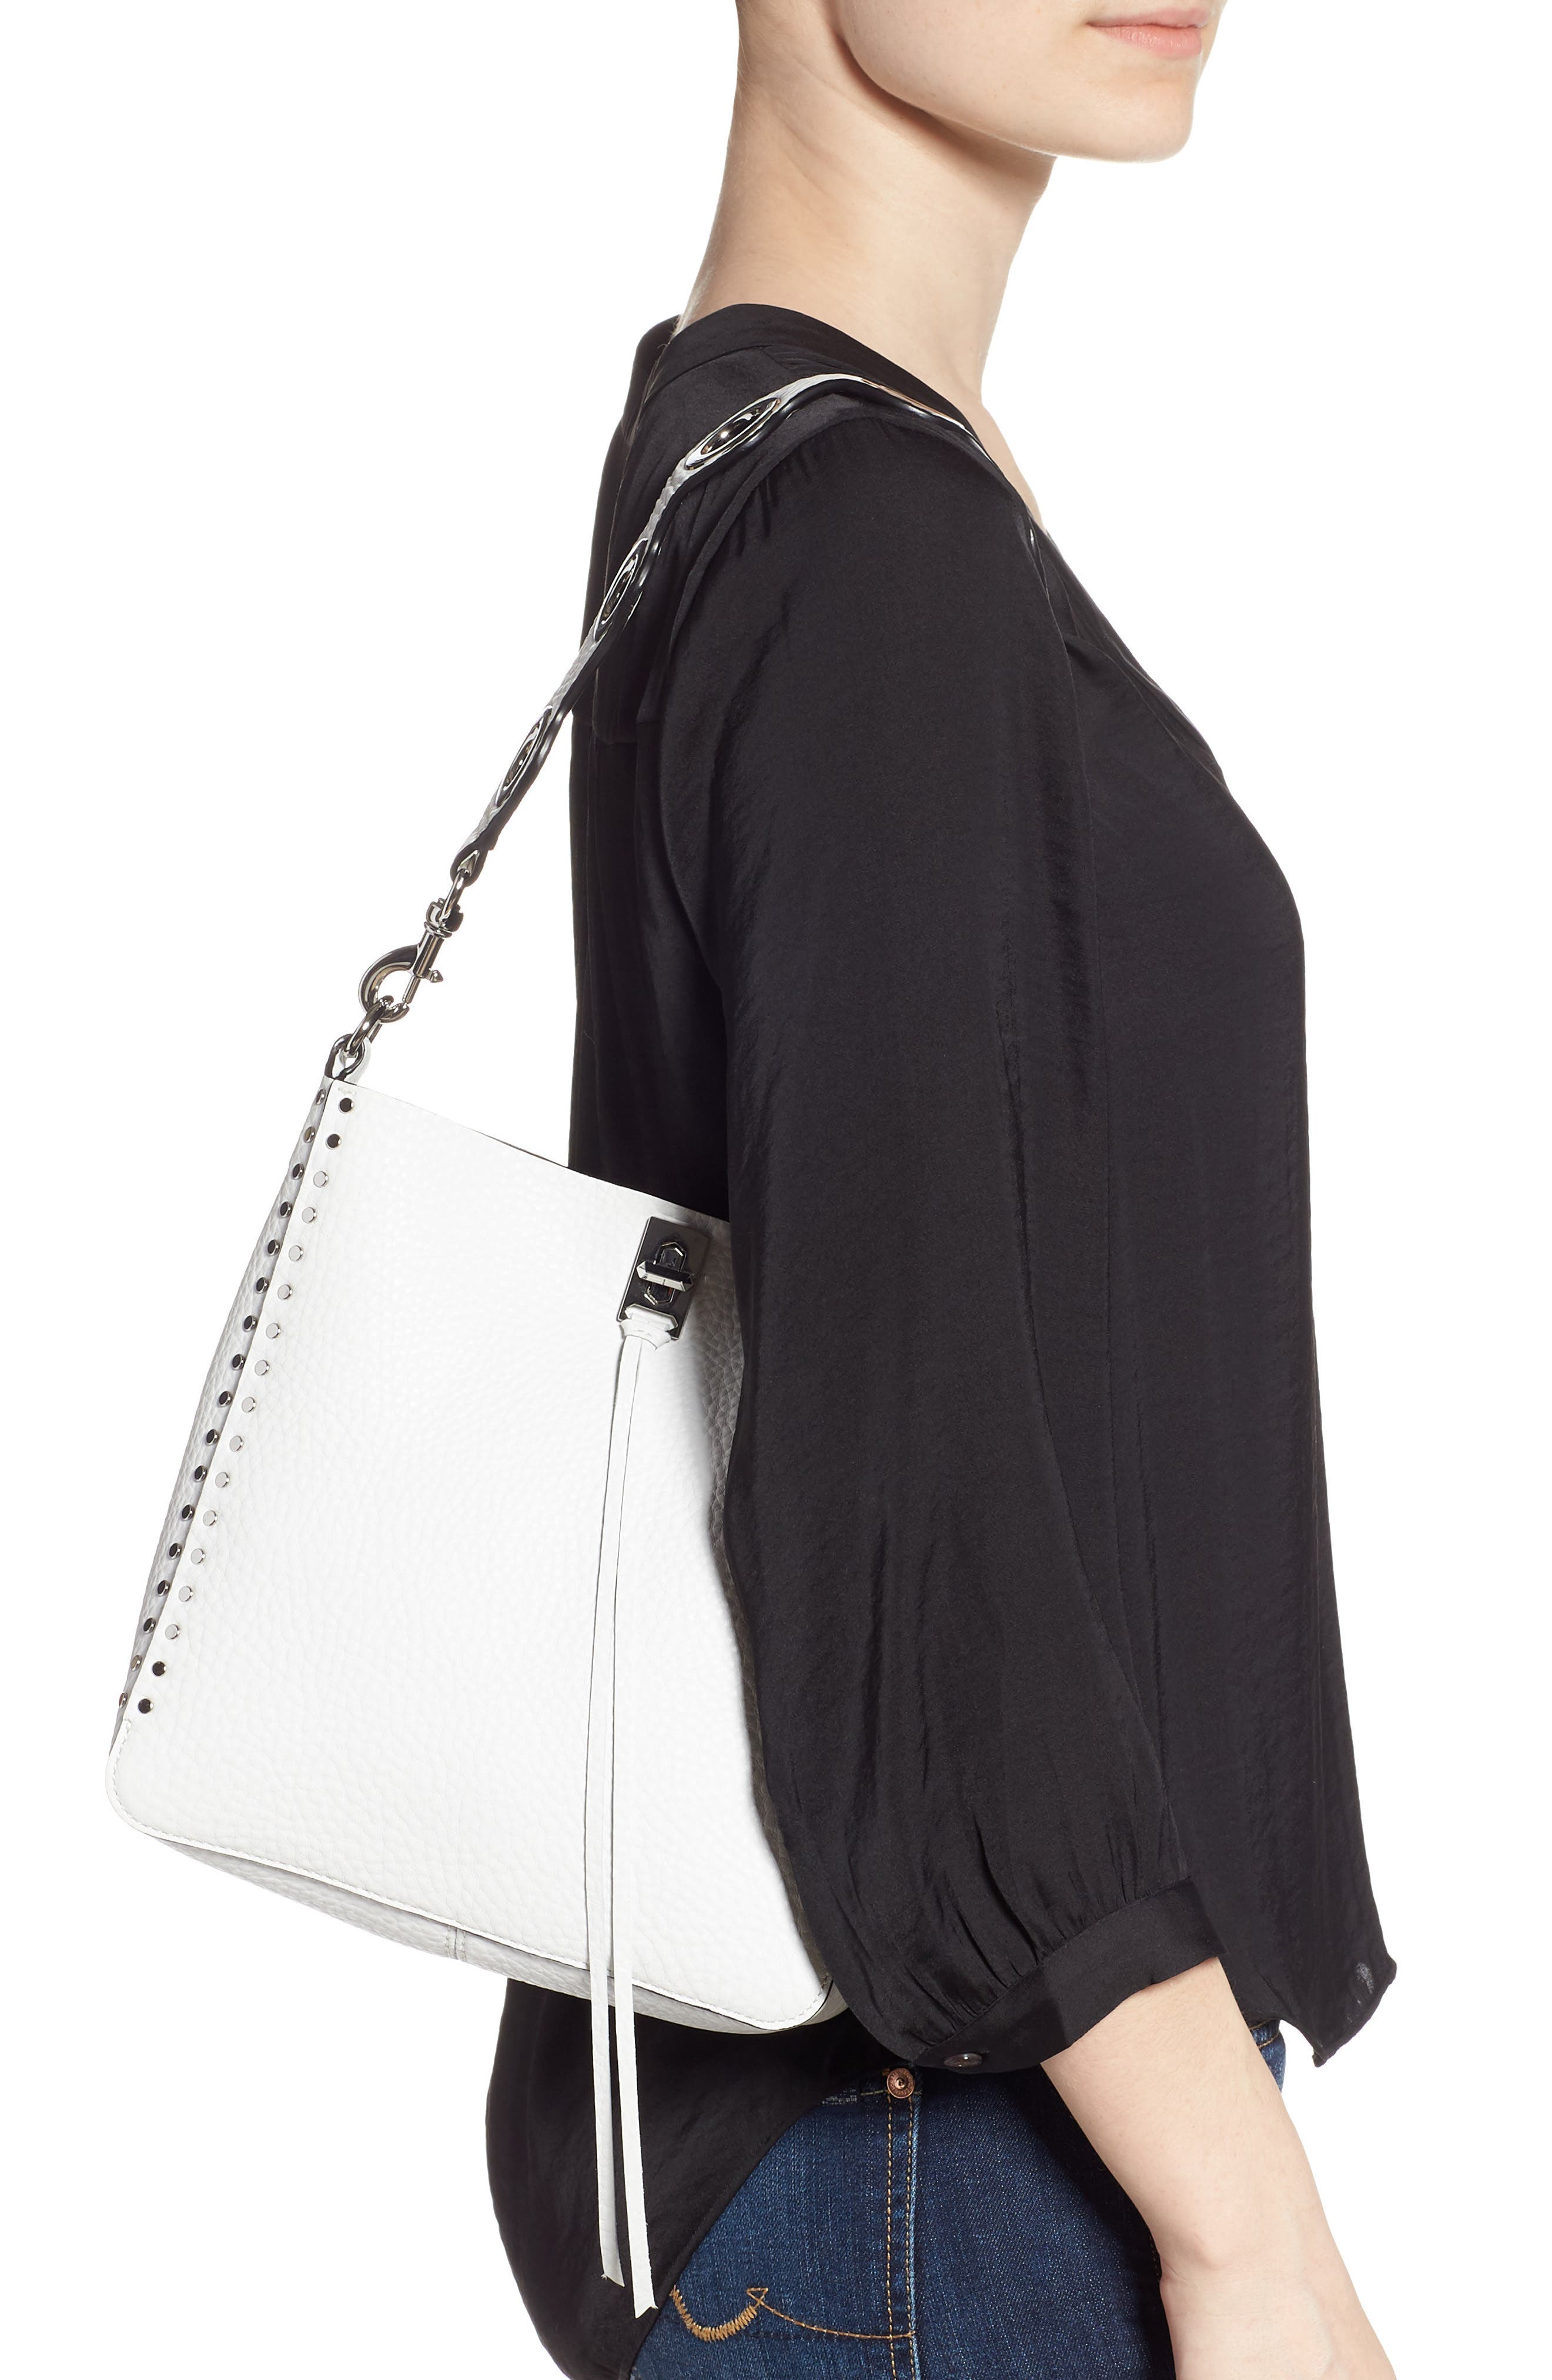 REBECCA MINKOFF, Small Studded Leather Feed Bag, Alternate thumbnail 2, color, OPTIC WHITE